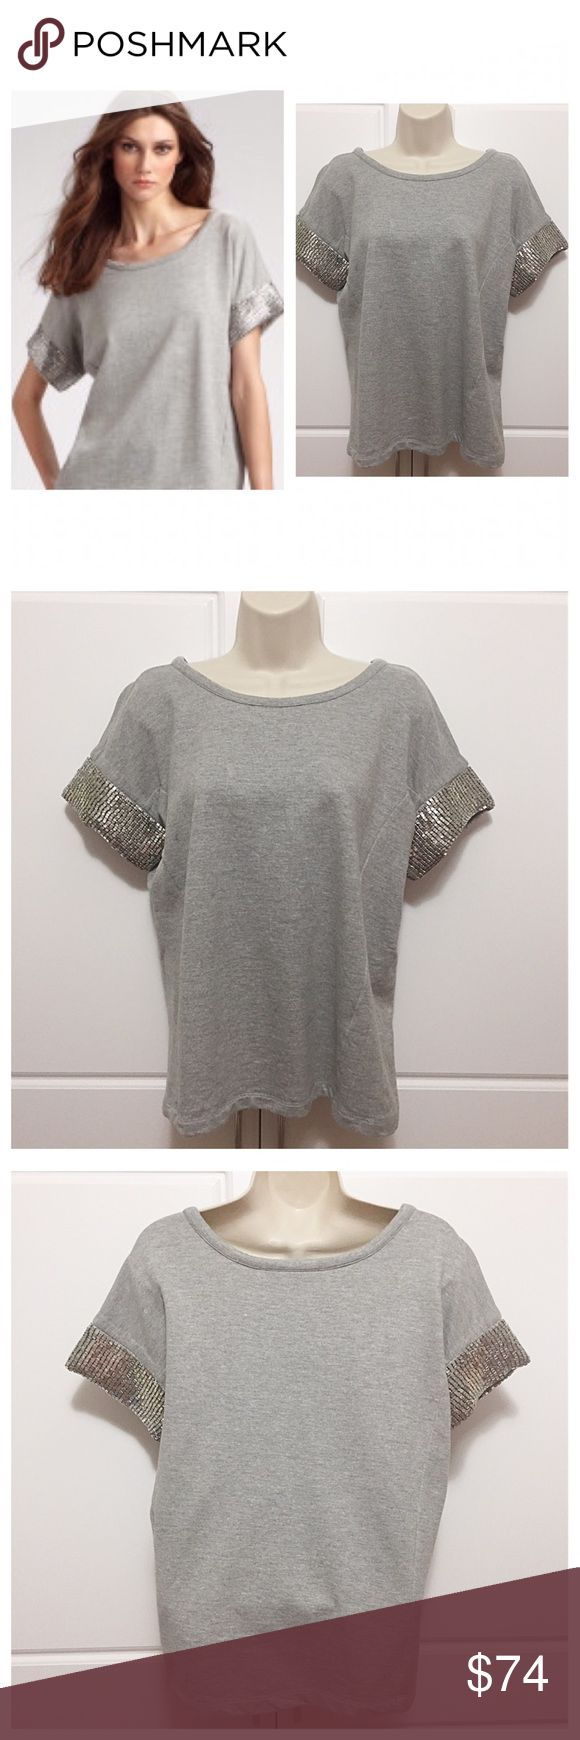 """Gryphon Studded Short Sleeve Top Fabulous silver studs on short sleeves. Heather grey sweatshirt material. Great with jeans! Great Gryphon quality! Measurements: bust 20"""", length 22.75"""" Gryphon Tops"""